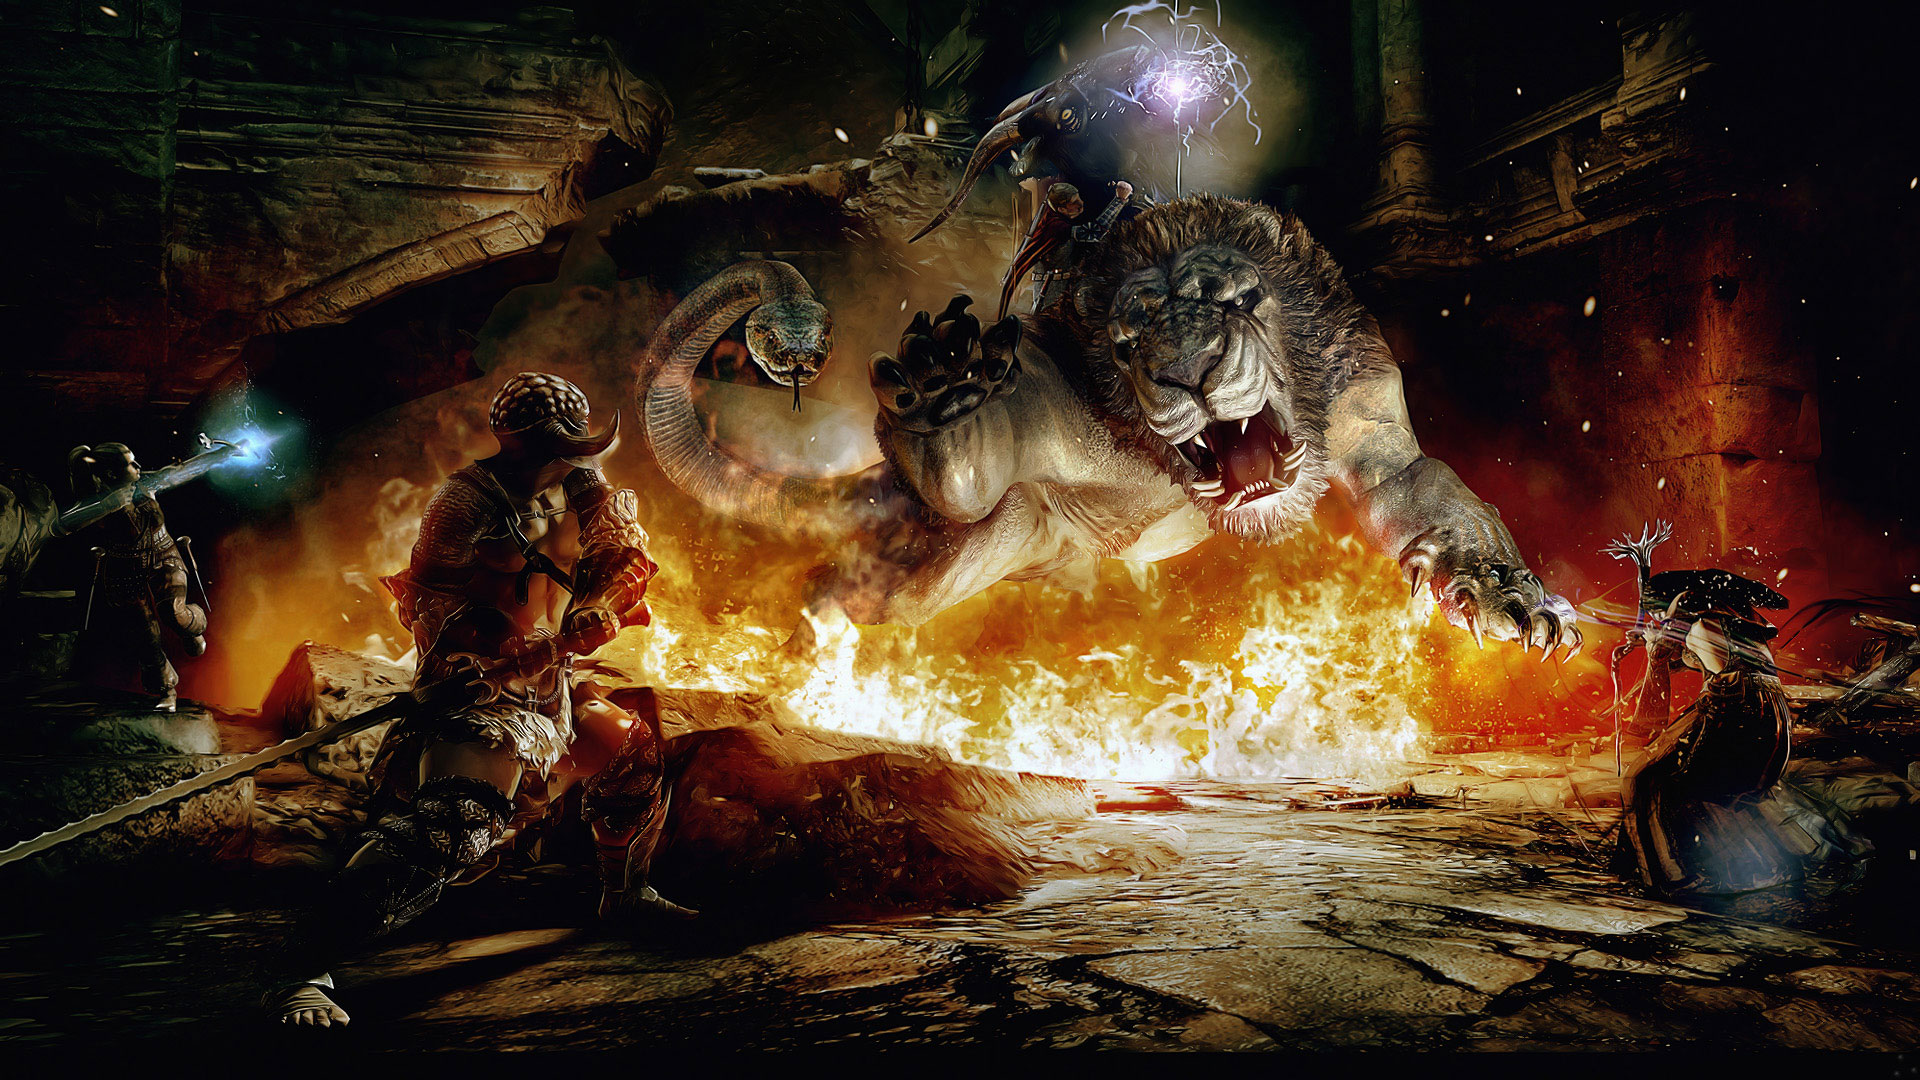 Dragons Dogma Wallpapers in HD Page 3 1920x1080